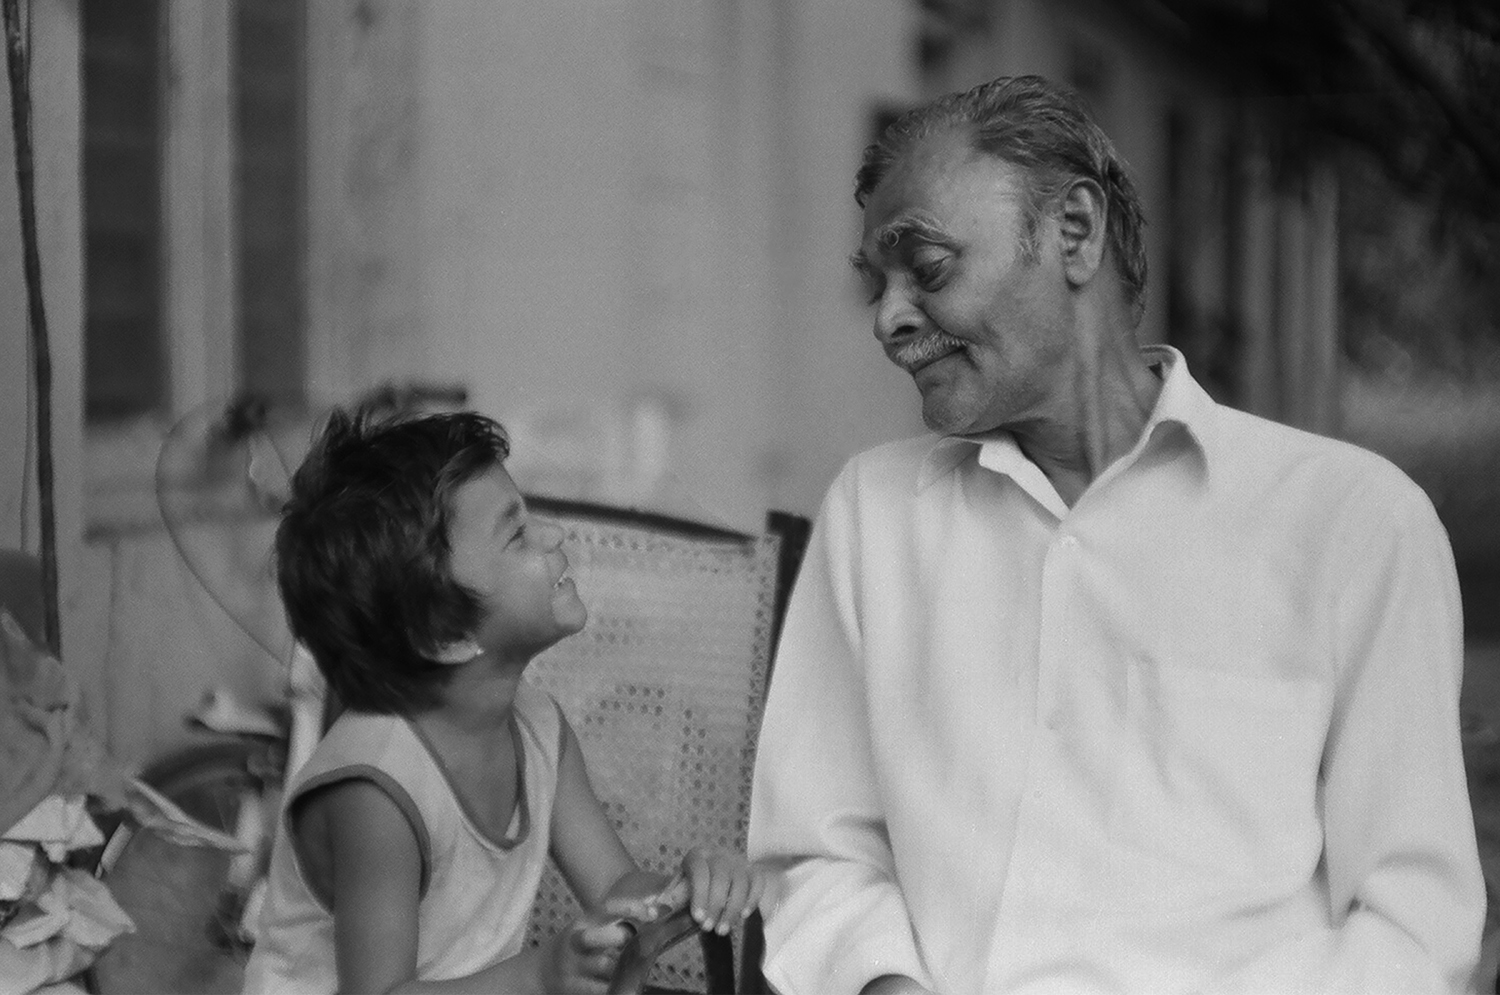 10. Tukaramji with his granddaughter who is looking into the camera. She is used to acting in a lot of films that students have to make as part of their projects | 05400015.jpg